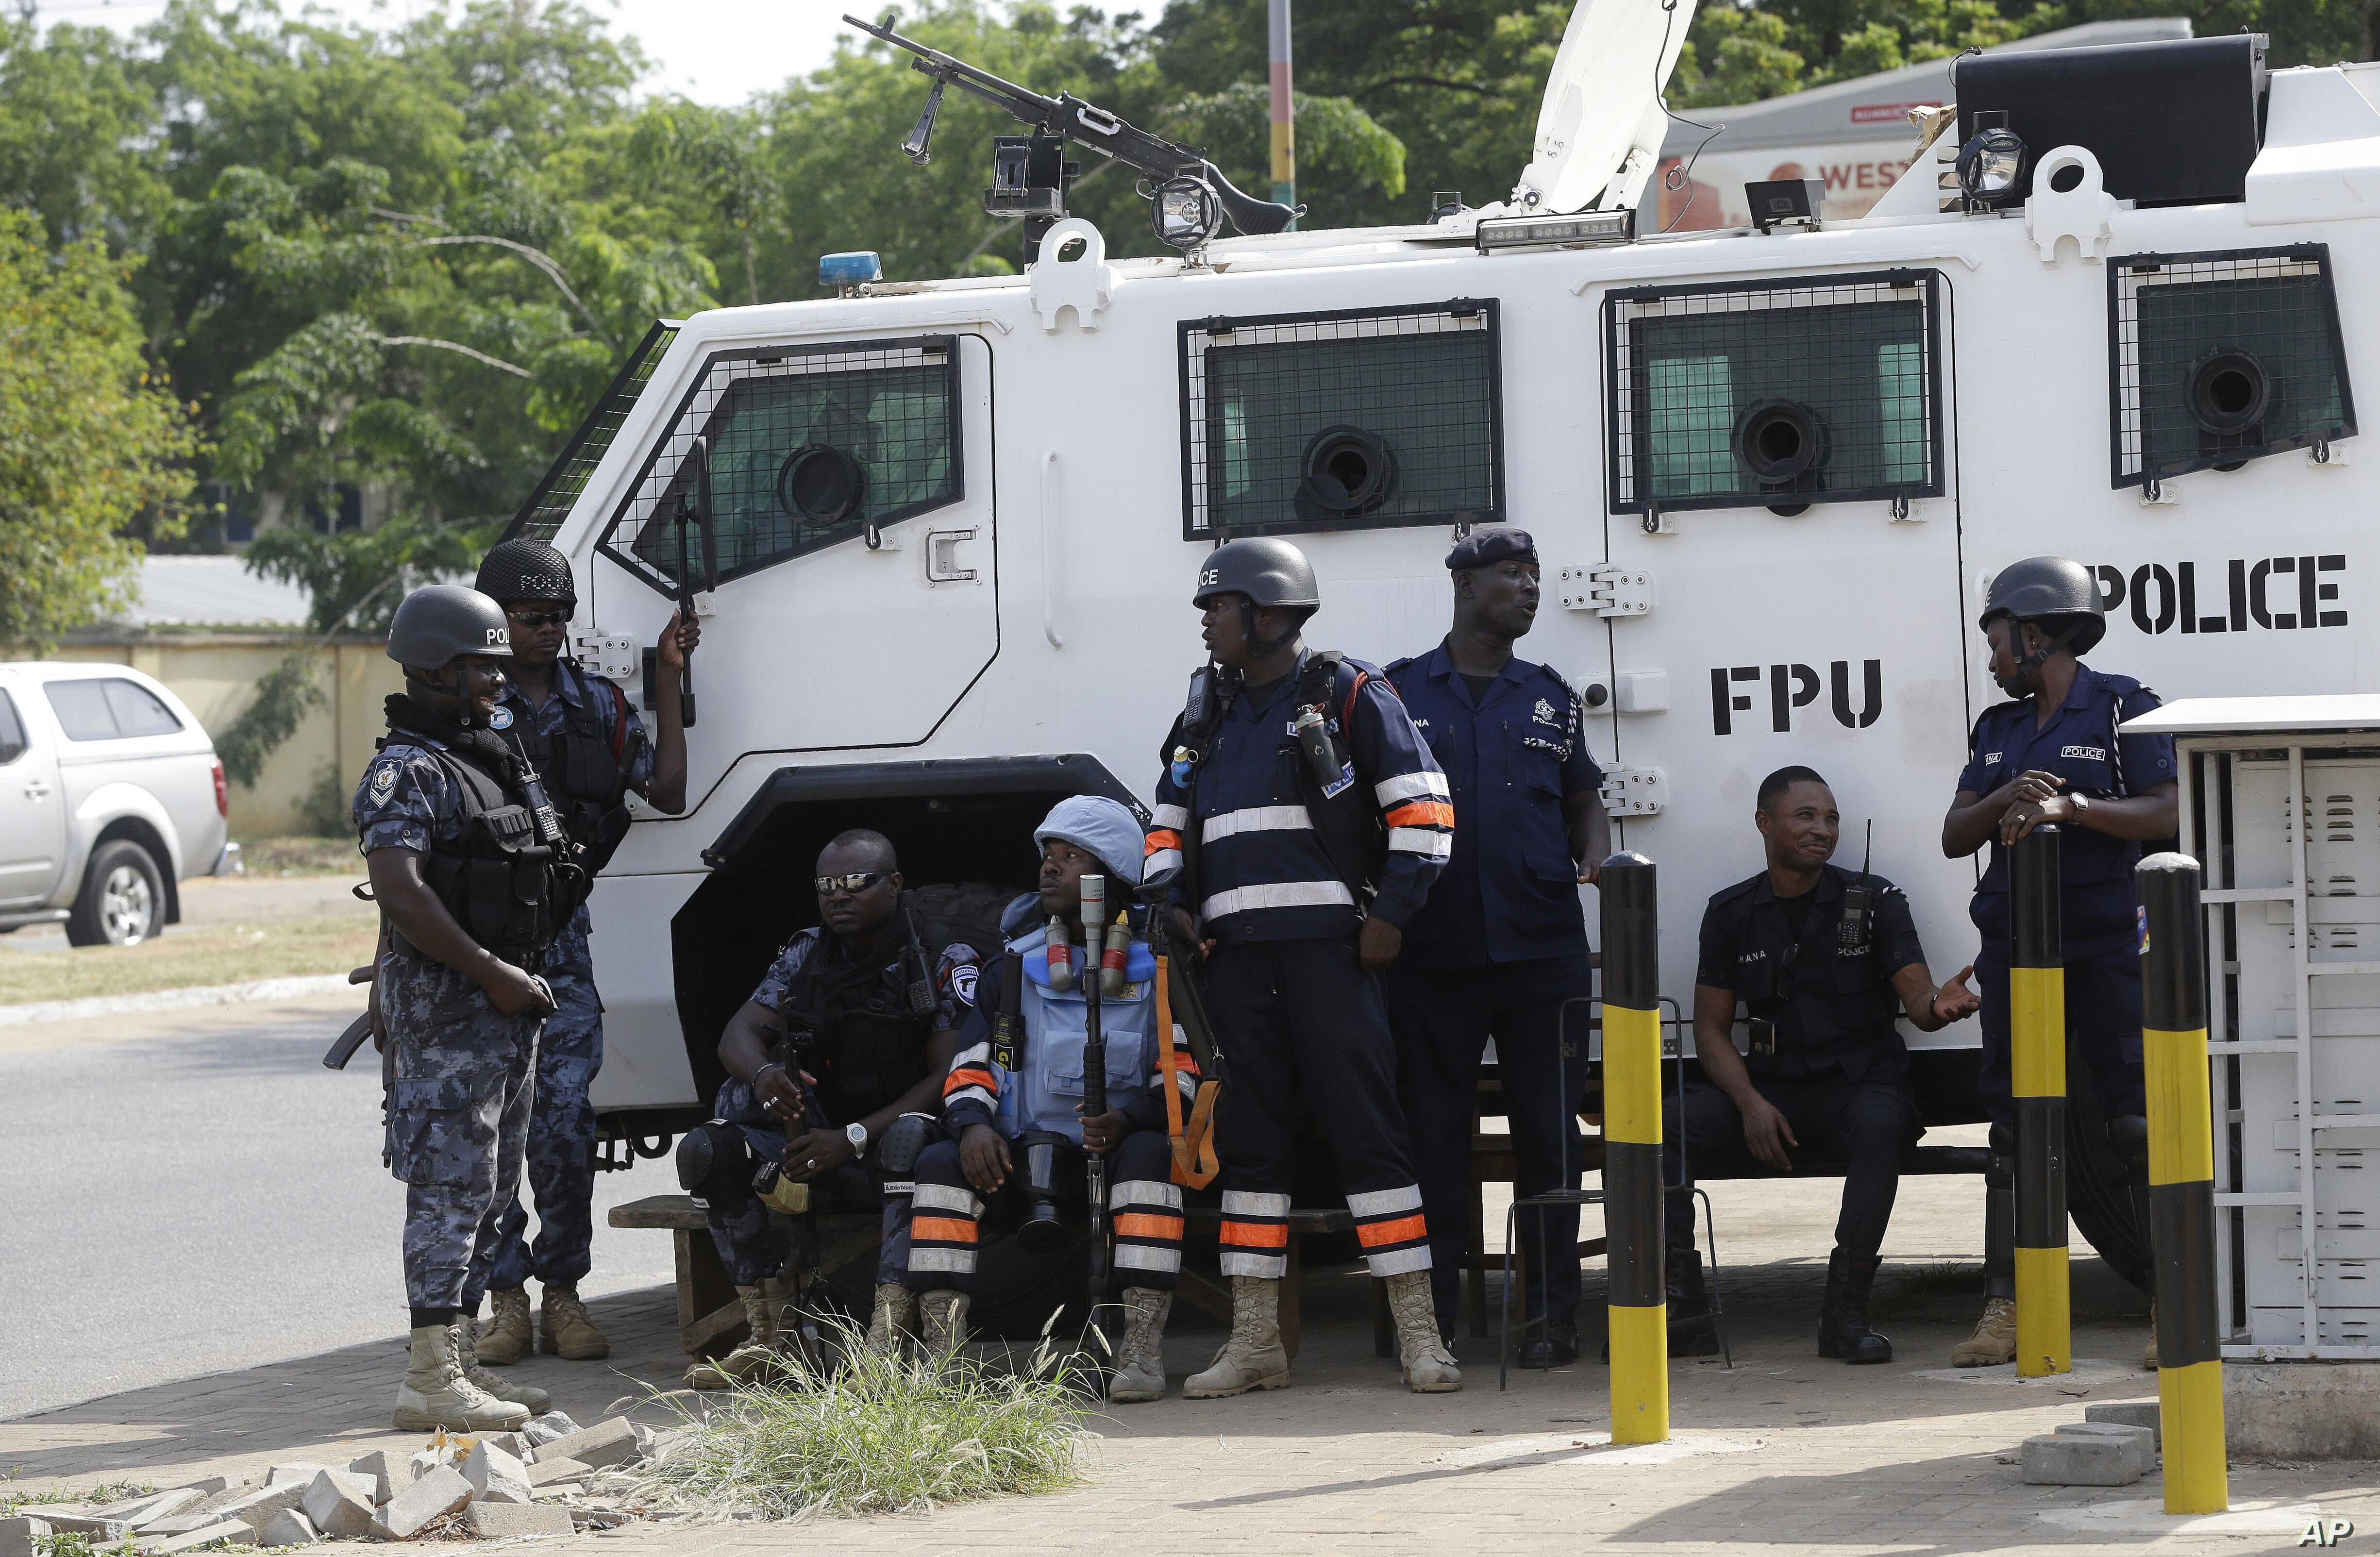 Police stand guard at the entrance of the Ghana electoral commission office in Accra, Ghana, Dec. 9, 2016.